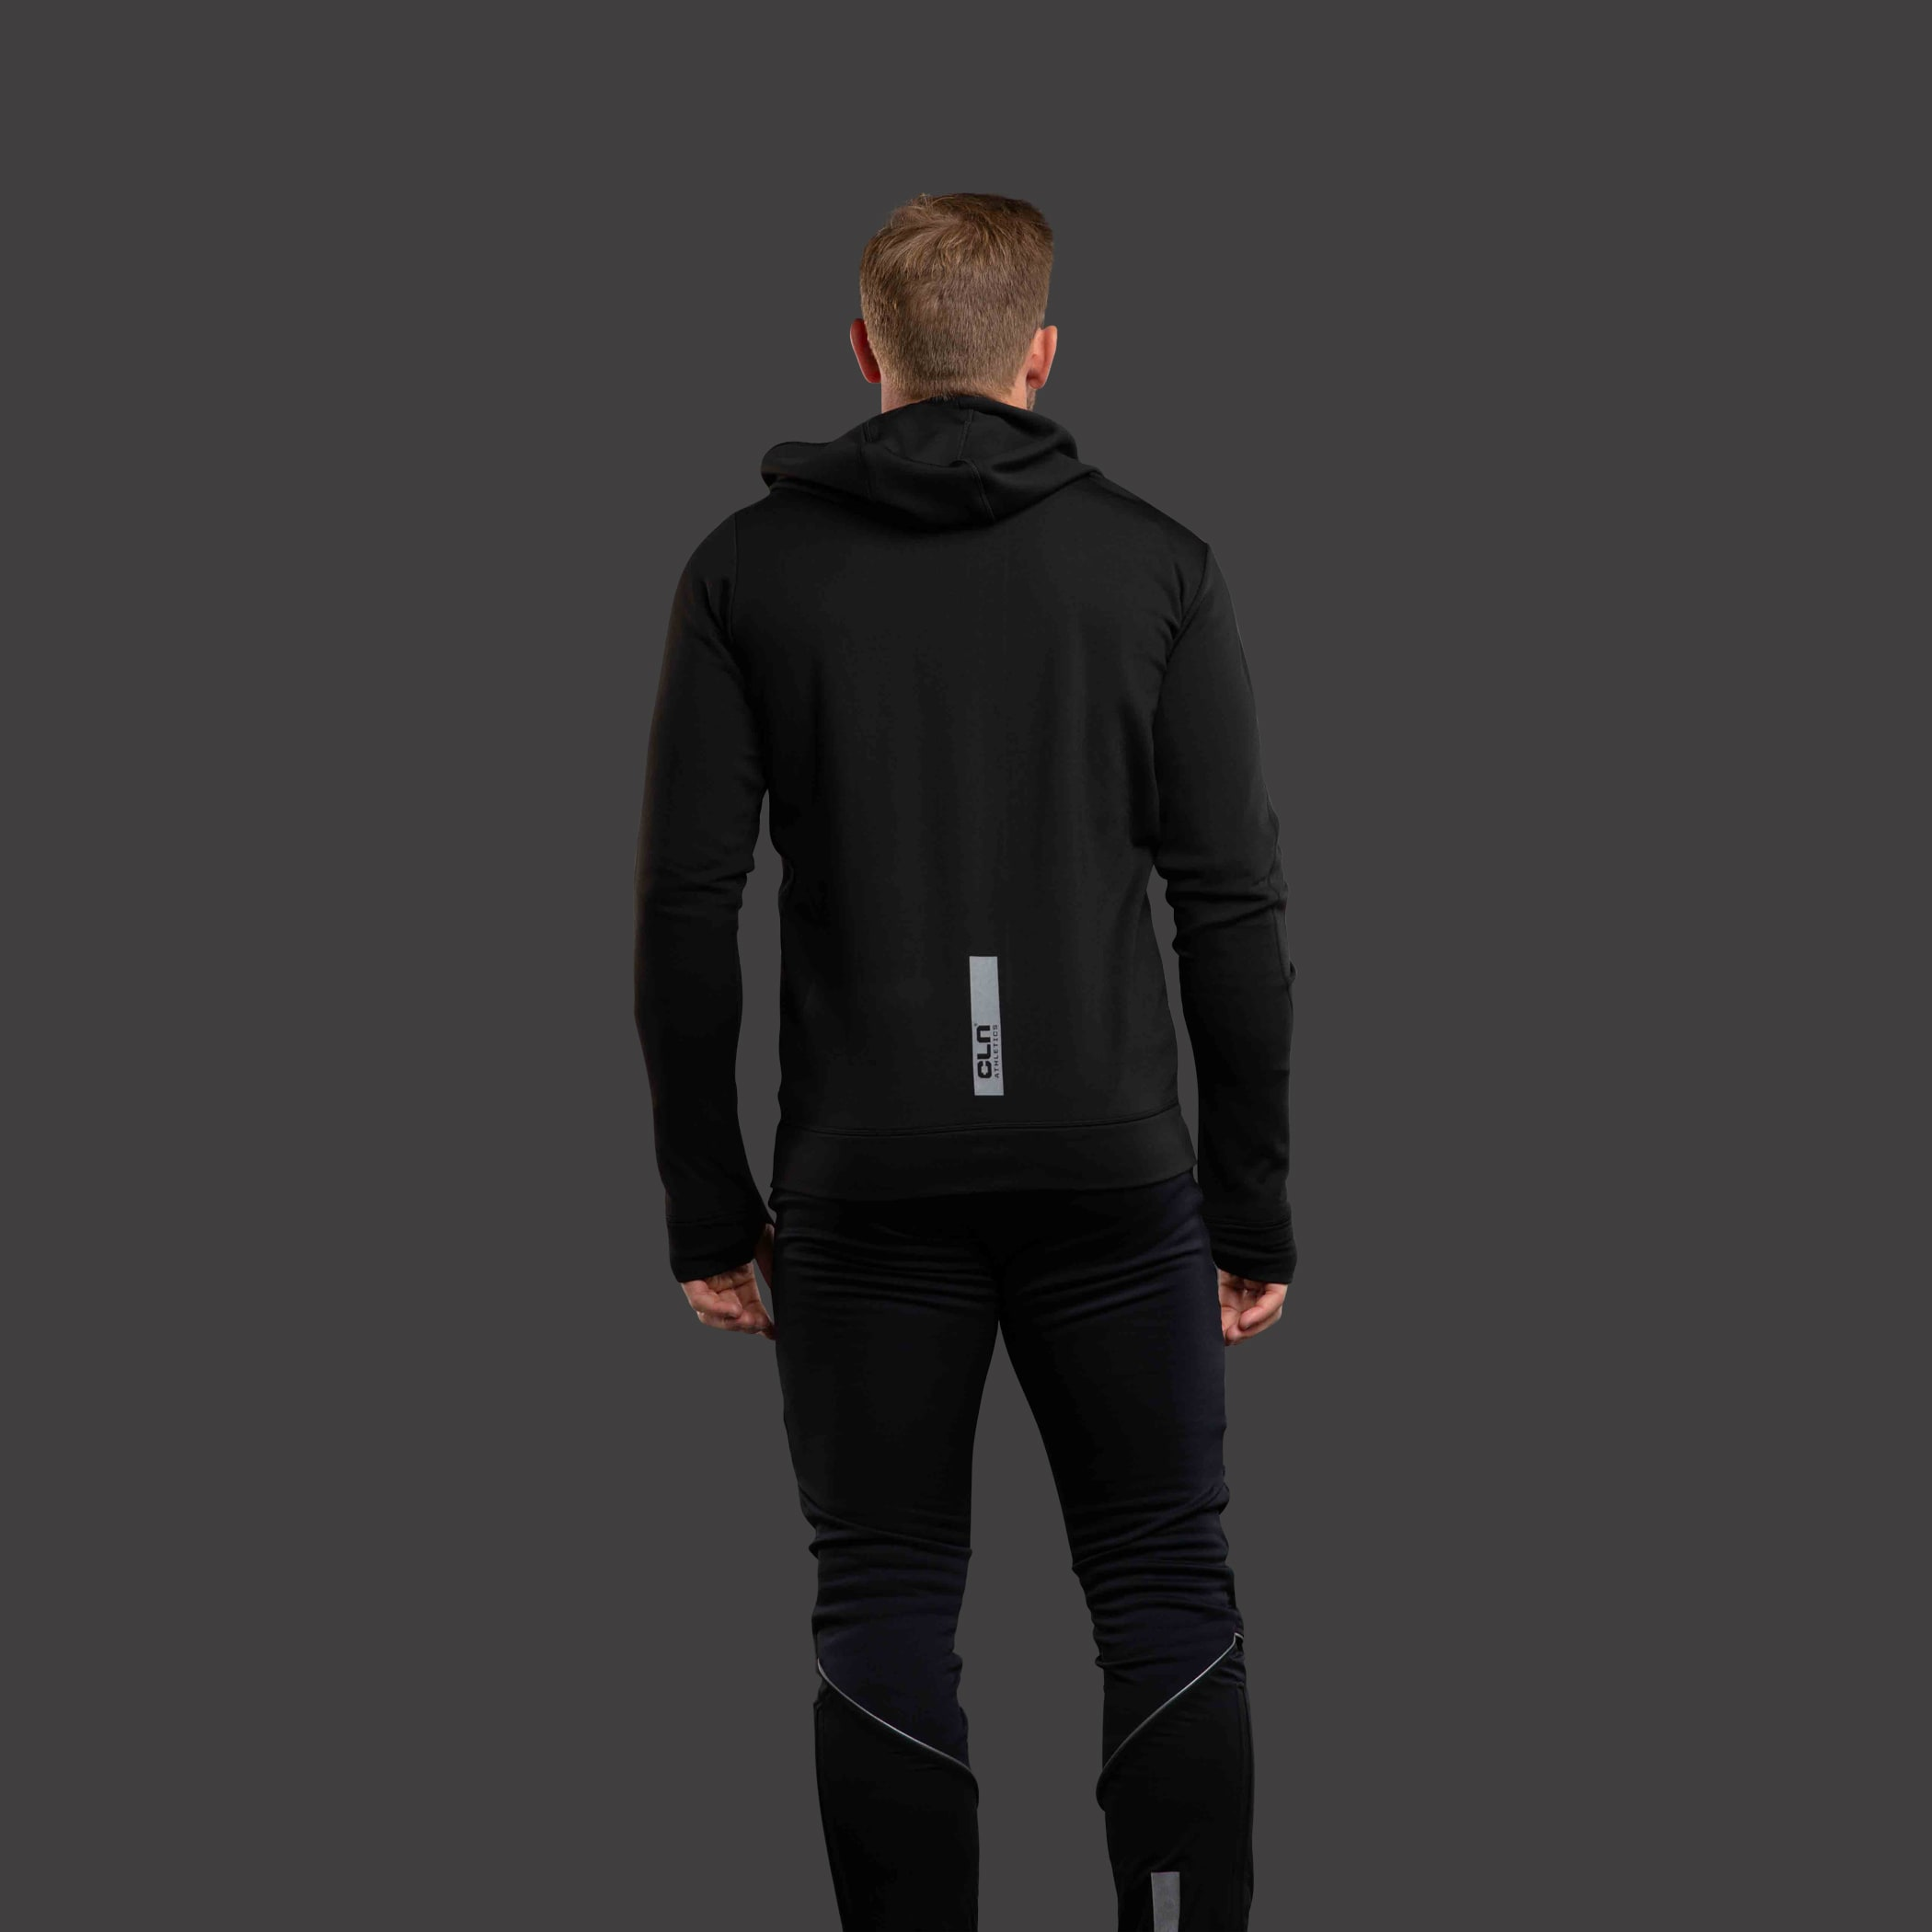 CLN Rocket hood Black